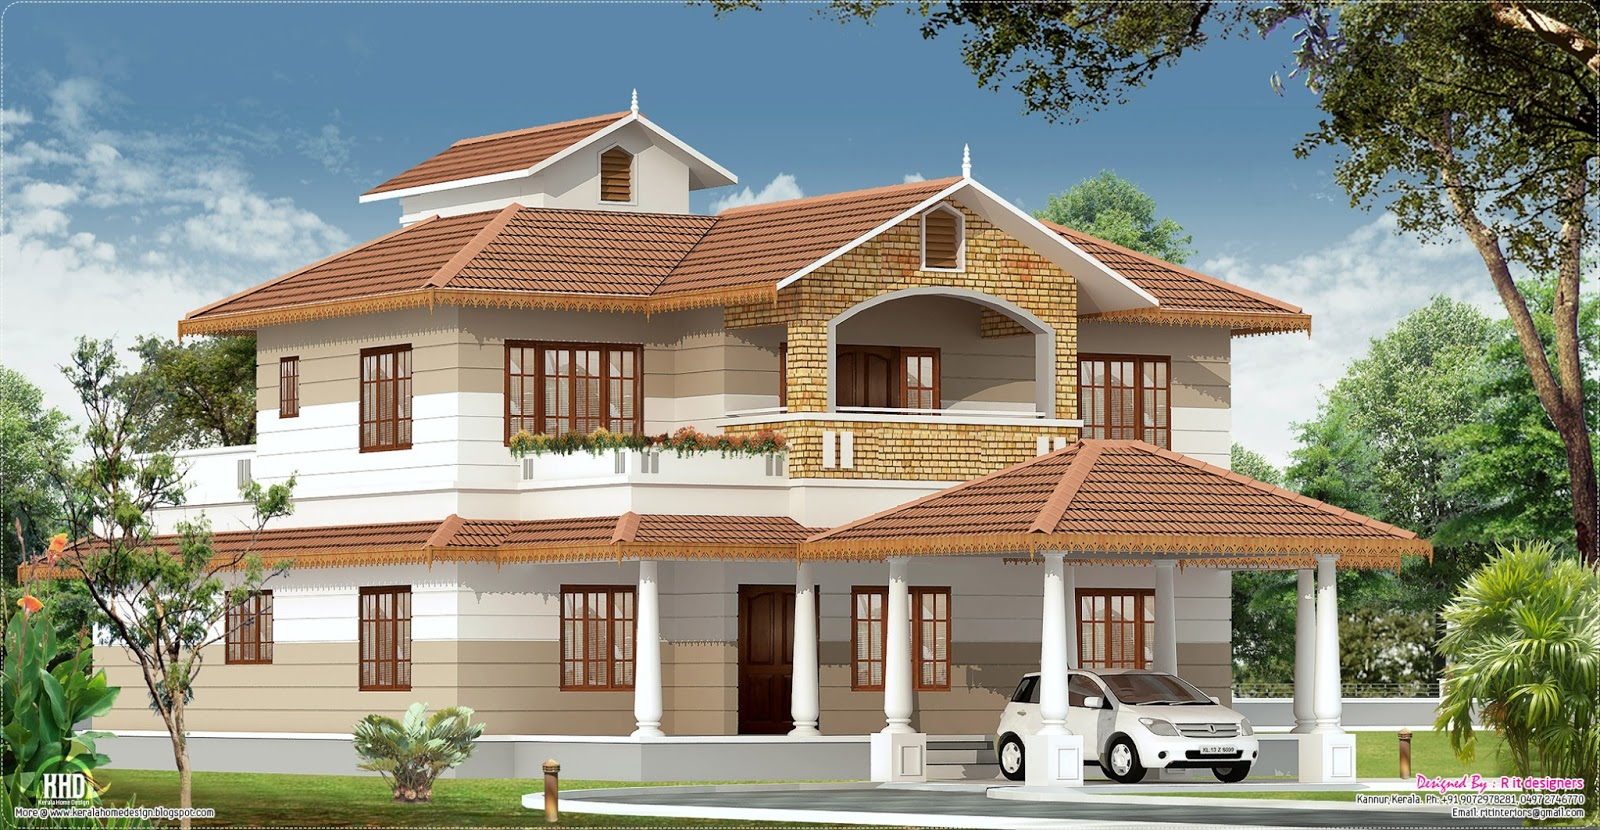 january 2013 kerala home design and floor plans On kerala house design